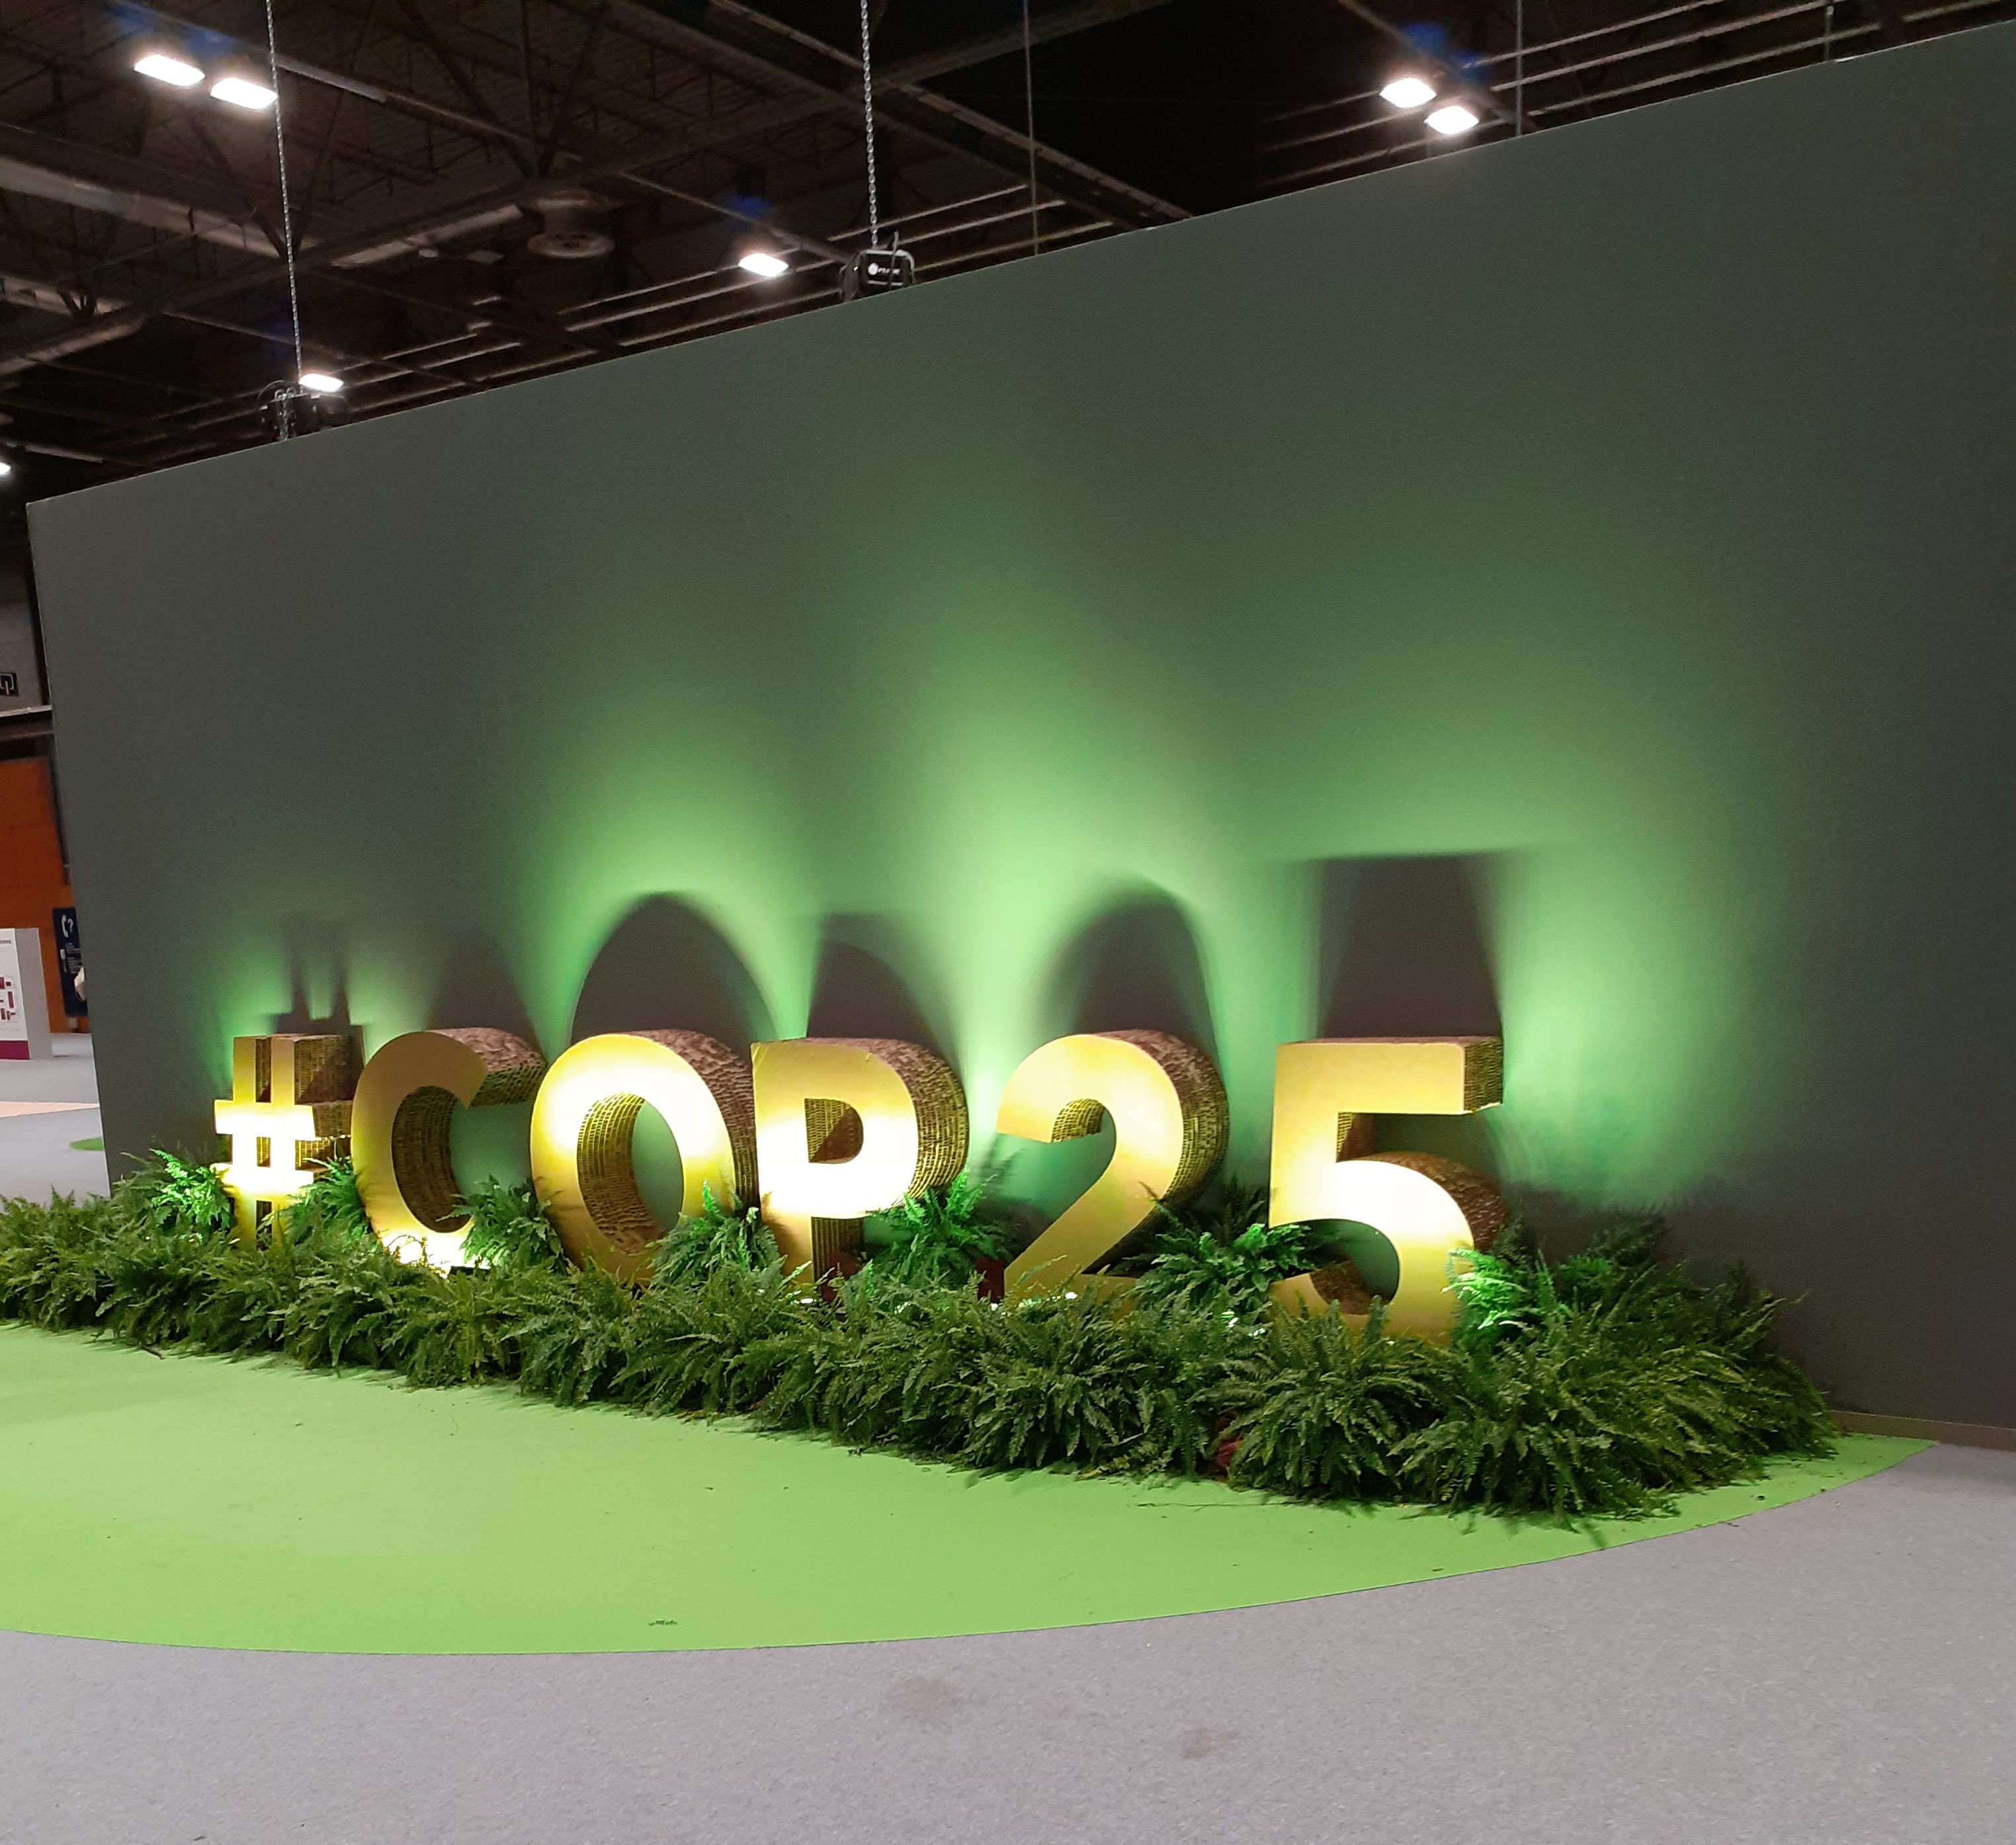 COP25 - Madrid and Chile